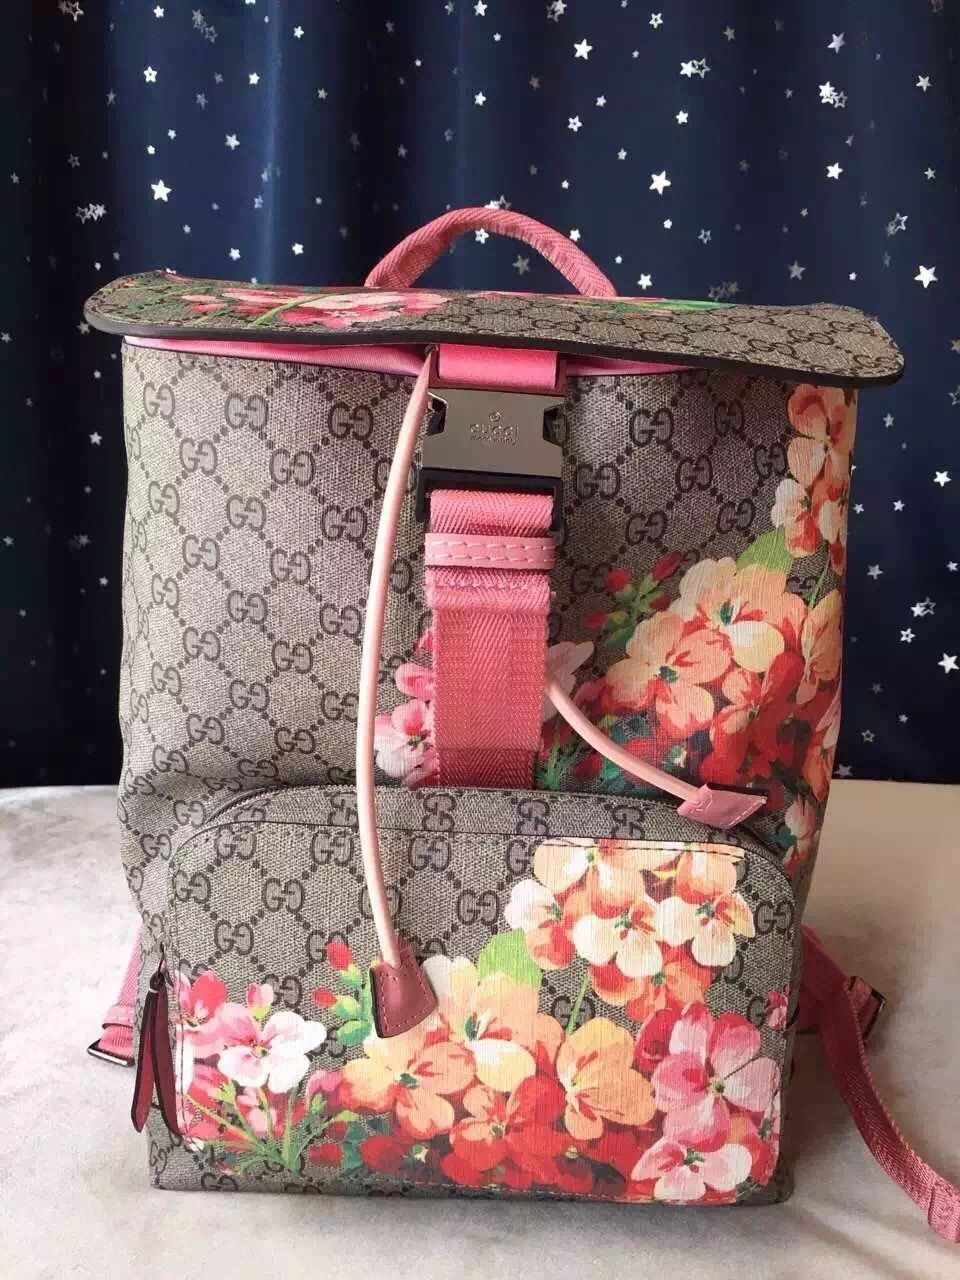 6c2f6552df21 Gucci Blooms Backpack 100% Authentic 80% Off | Real Gucci Tote Bags ...